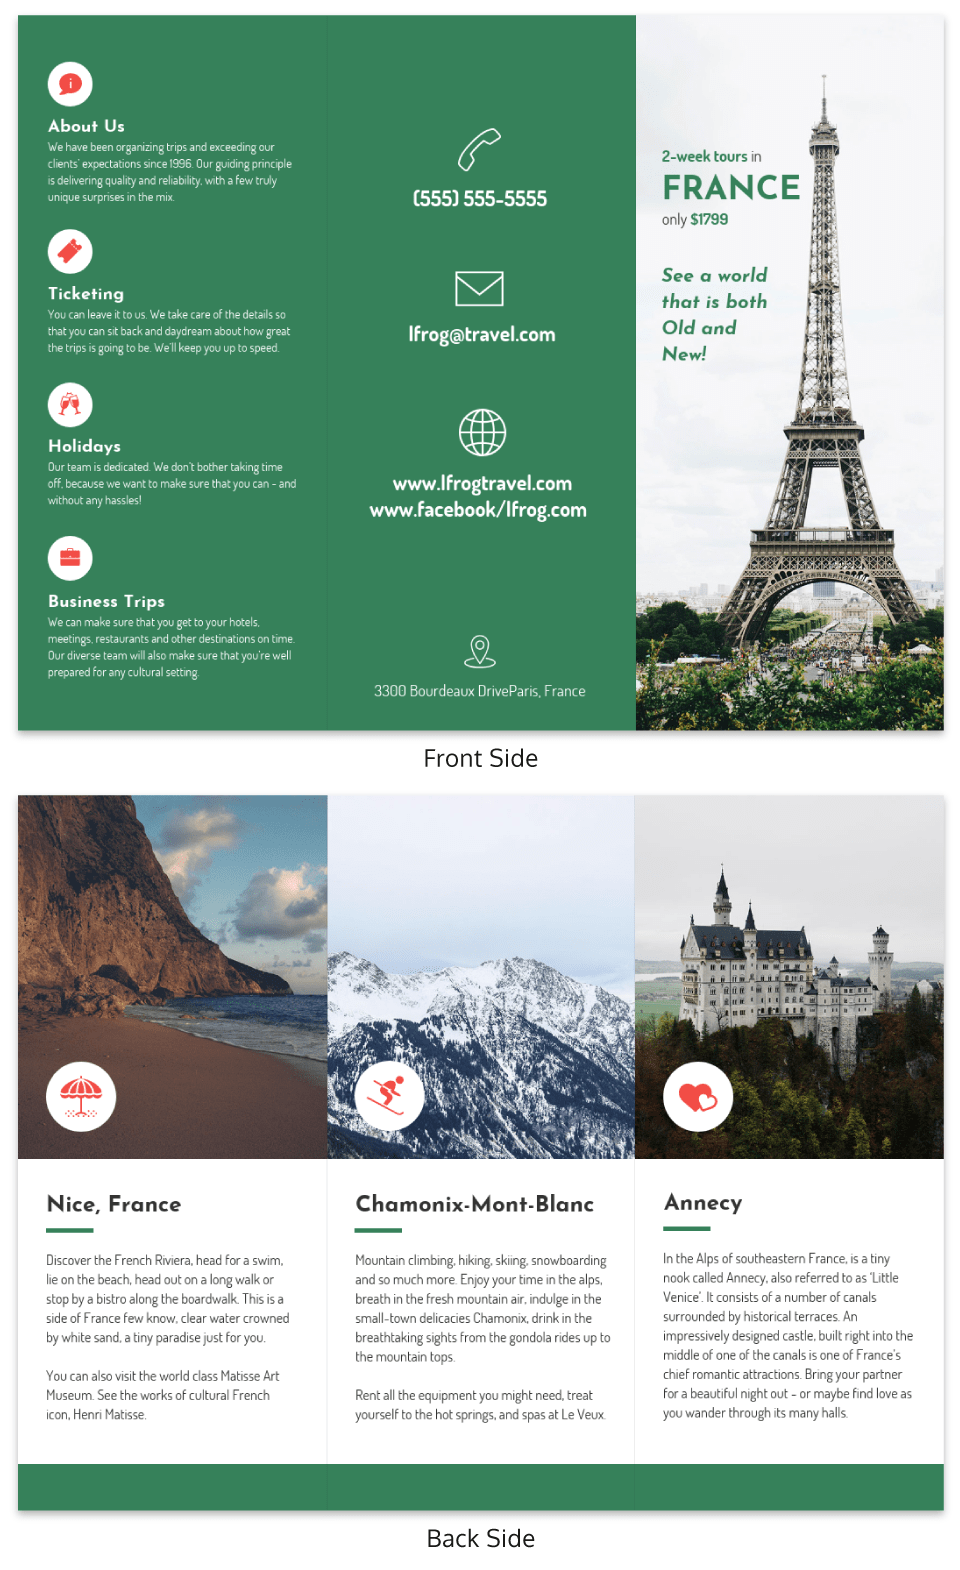 Green France TriFold Travel Brochure Example